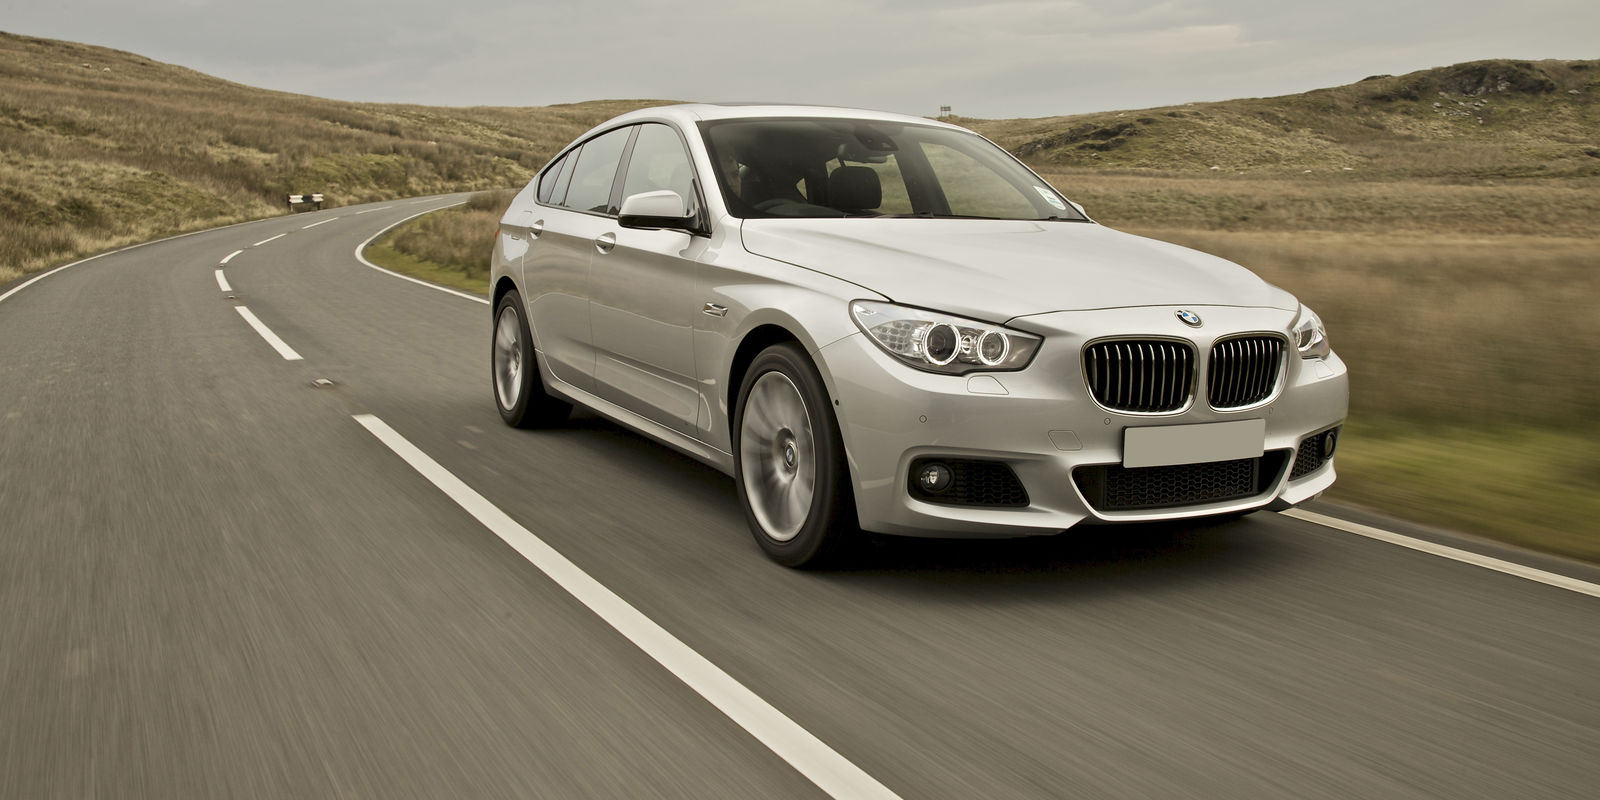 Bmw 5 Series Gran Turismo Review Bmw 3 Series Gran Turismo Review Carwow Upcomingcarshq